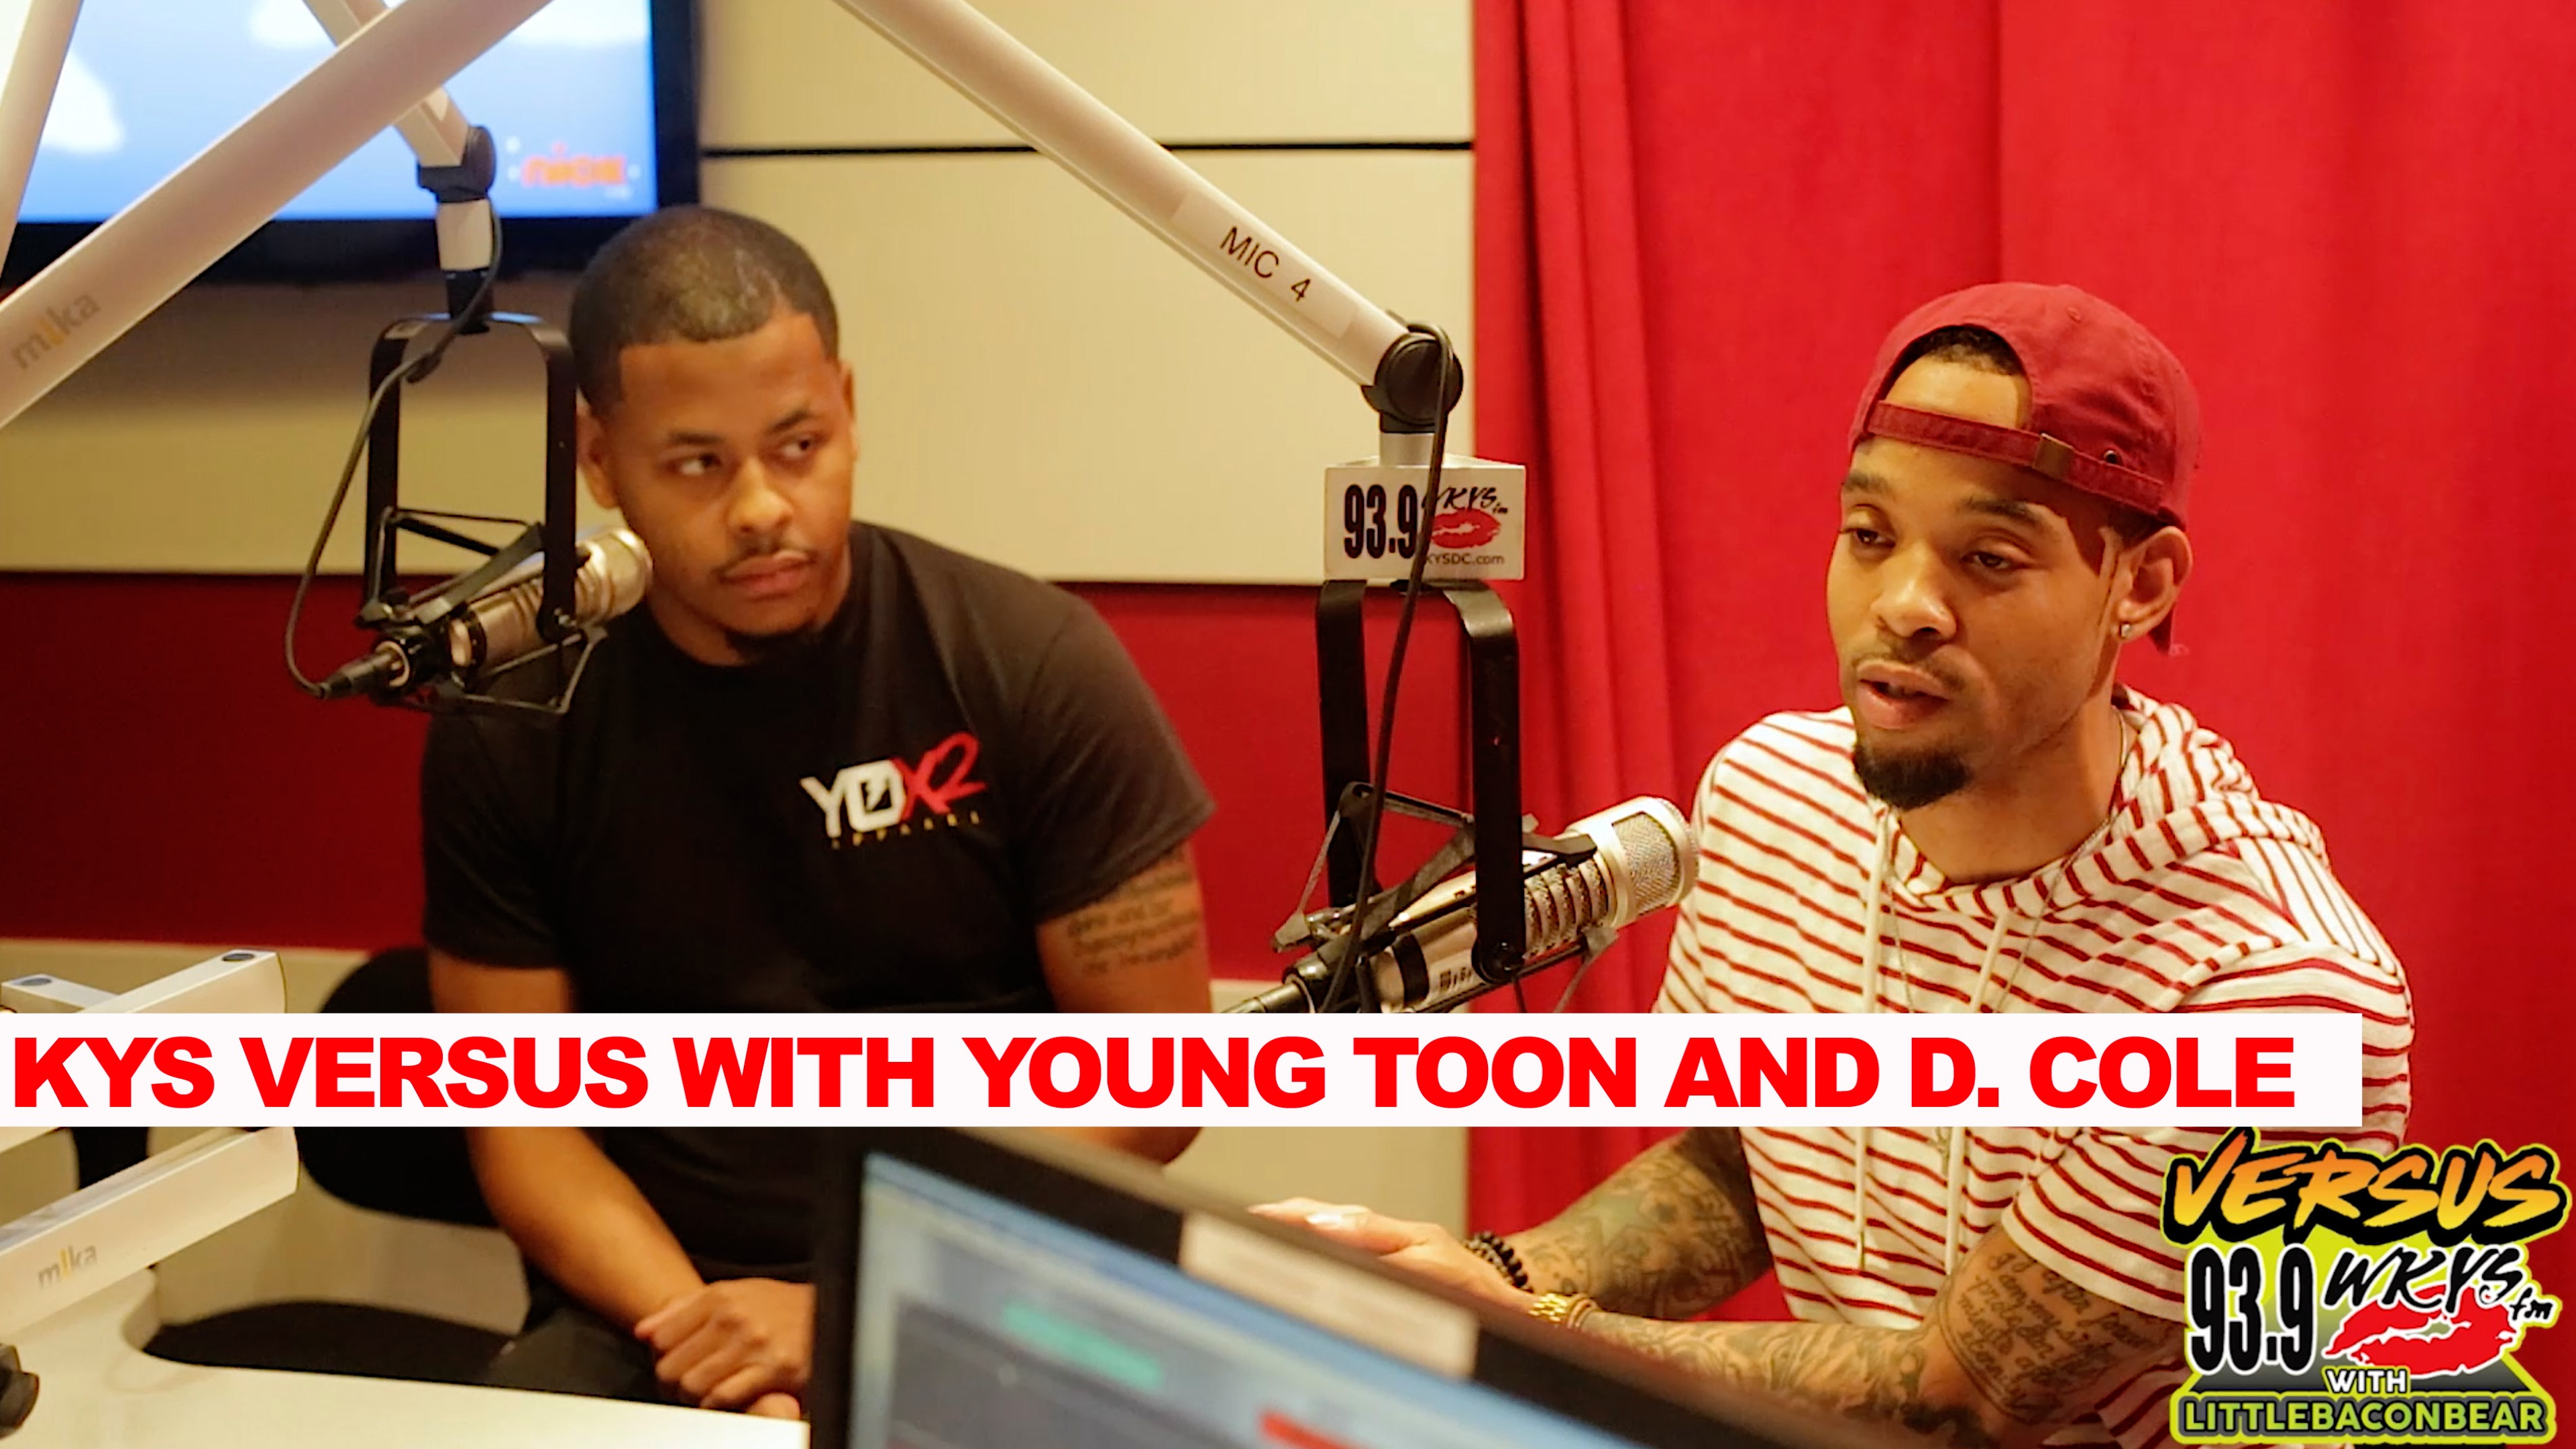 #KYSVersus: Young Toon And D. Cole